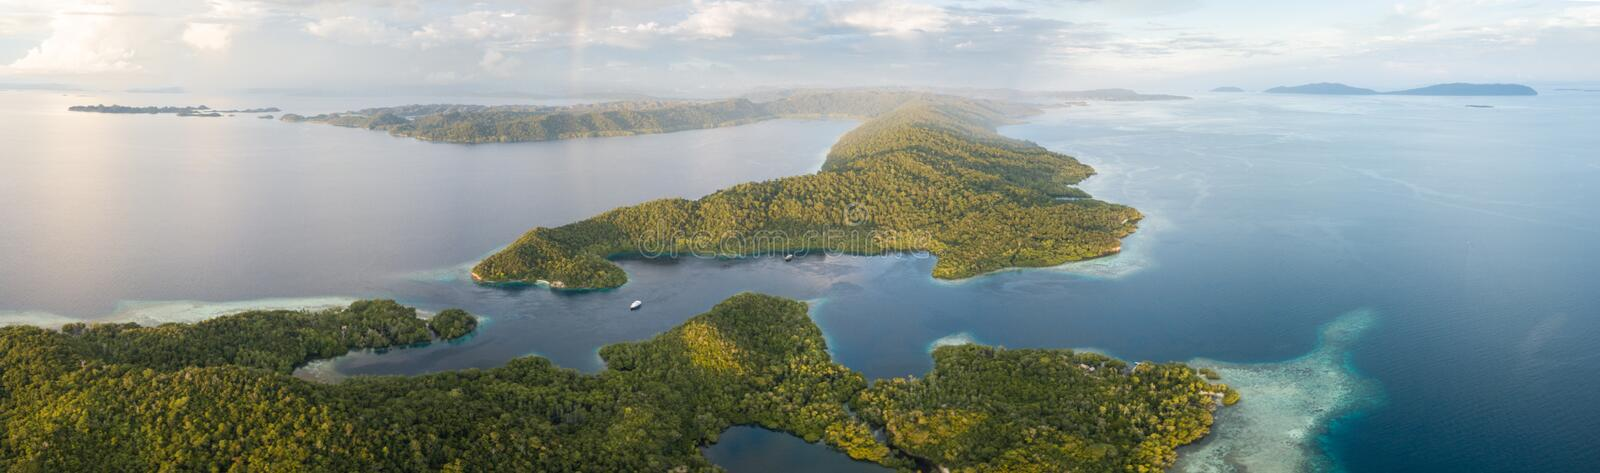 Aerial View of Tropical Islands and Reefs in Raja Ampat. Clouds drift above a beautiful set of islands in Raja Ampat, Indonesia. This tropical region is known as stock images